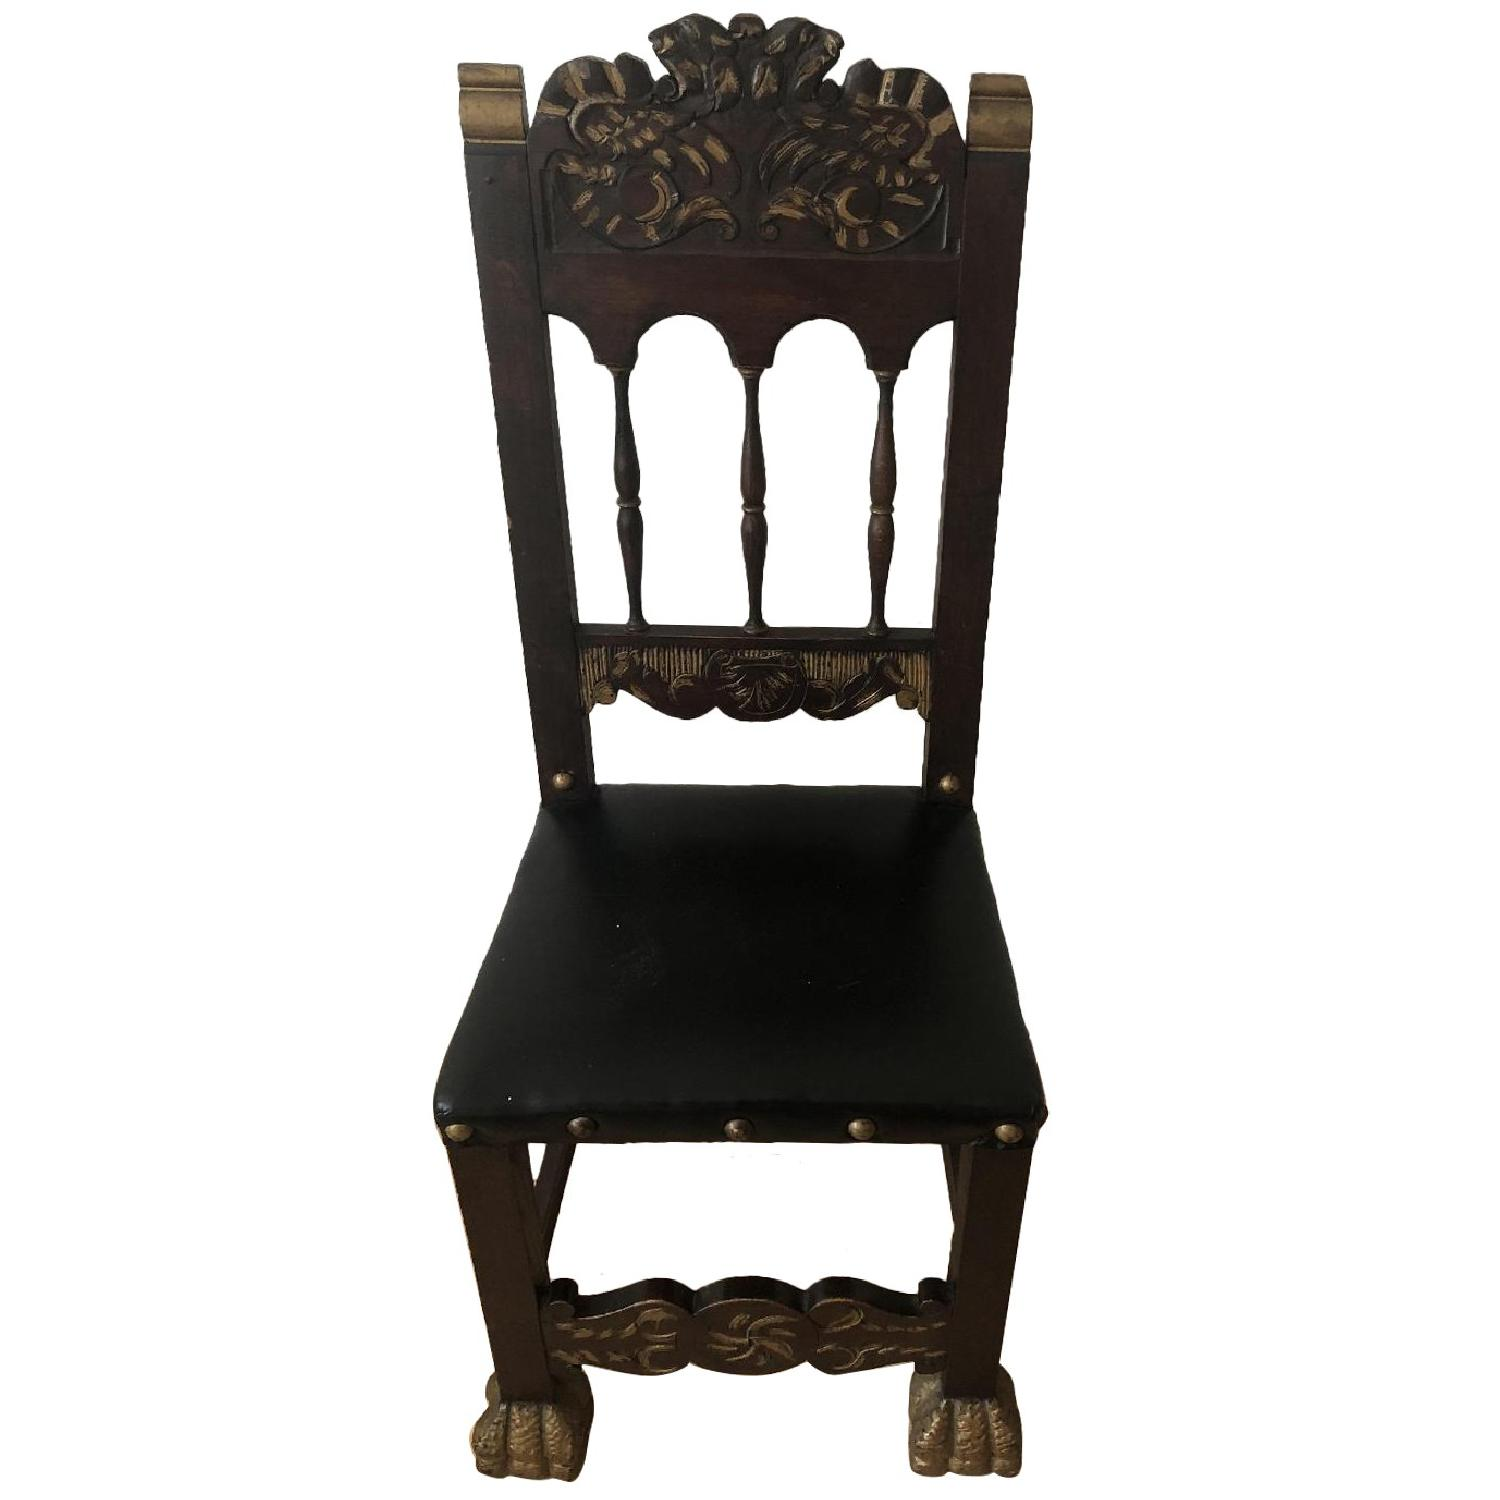 Antique Claw Foot Chair w/ Leather Seat - image-0